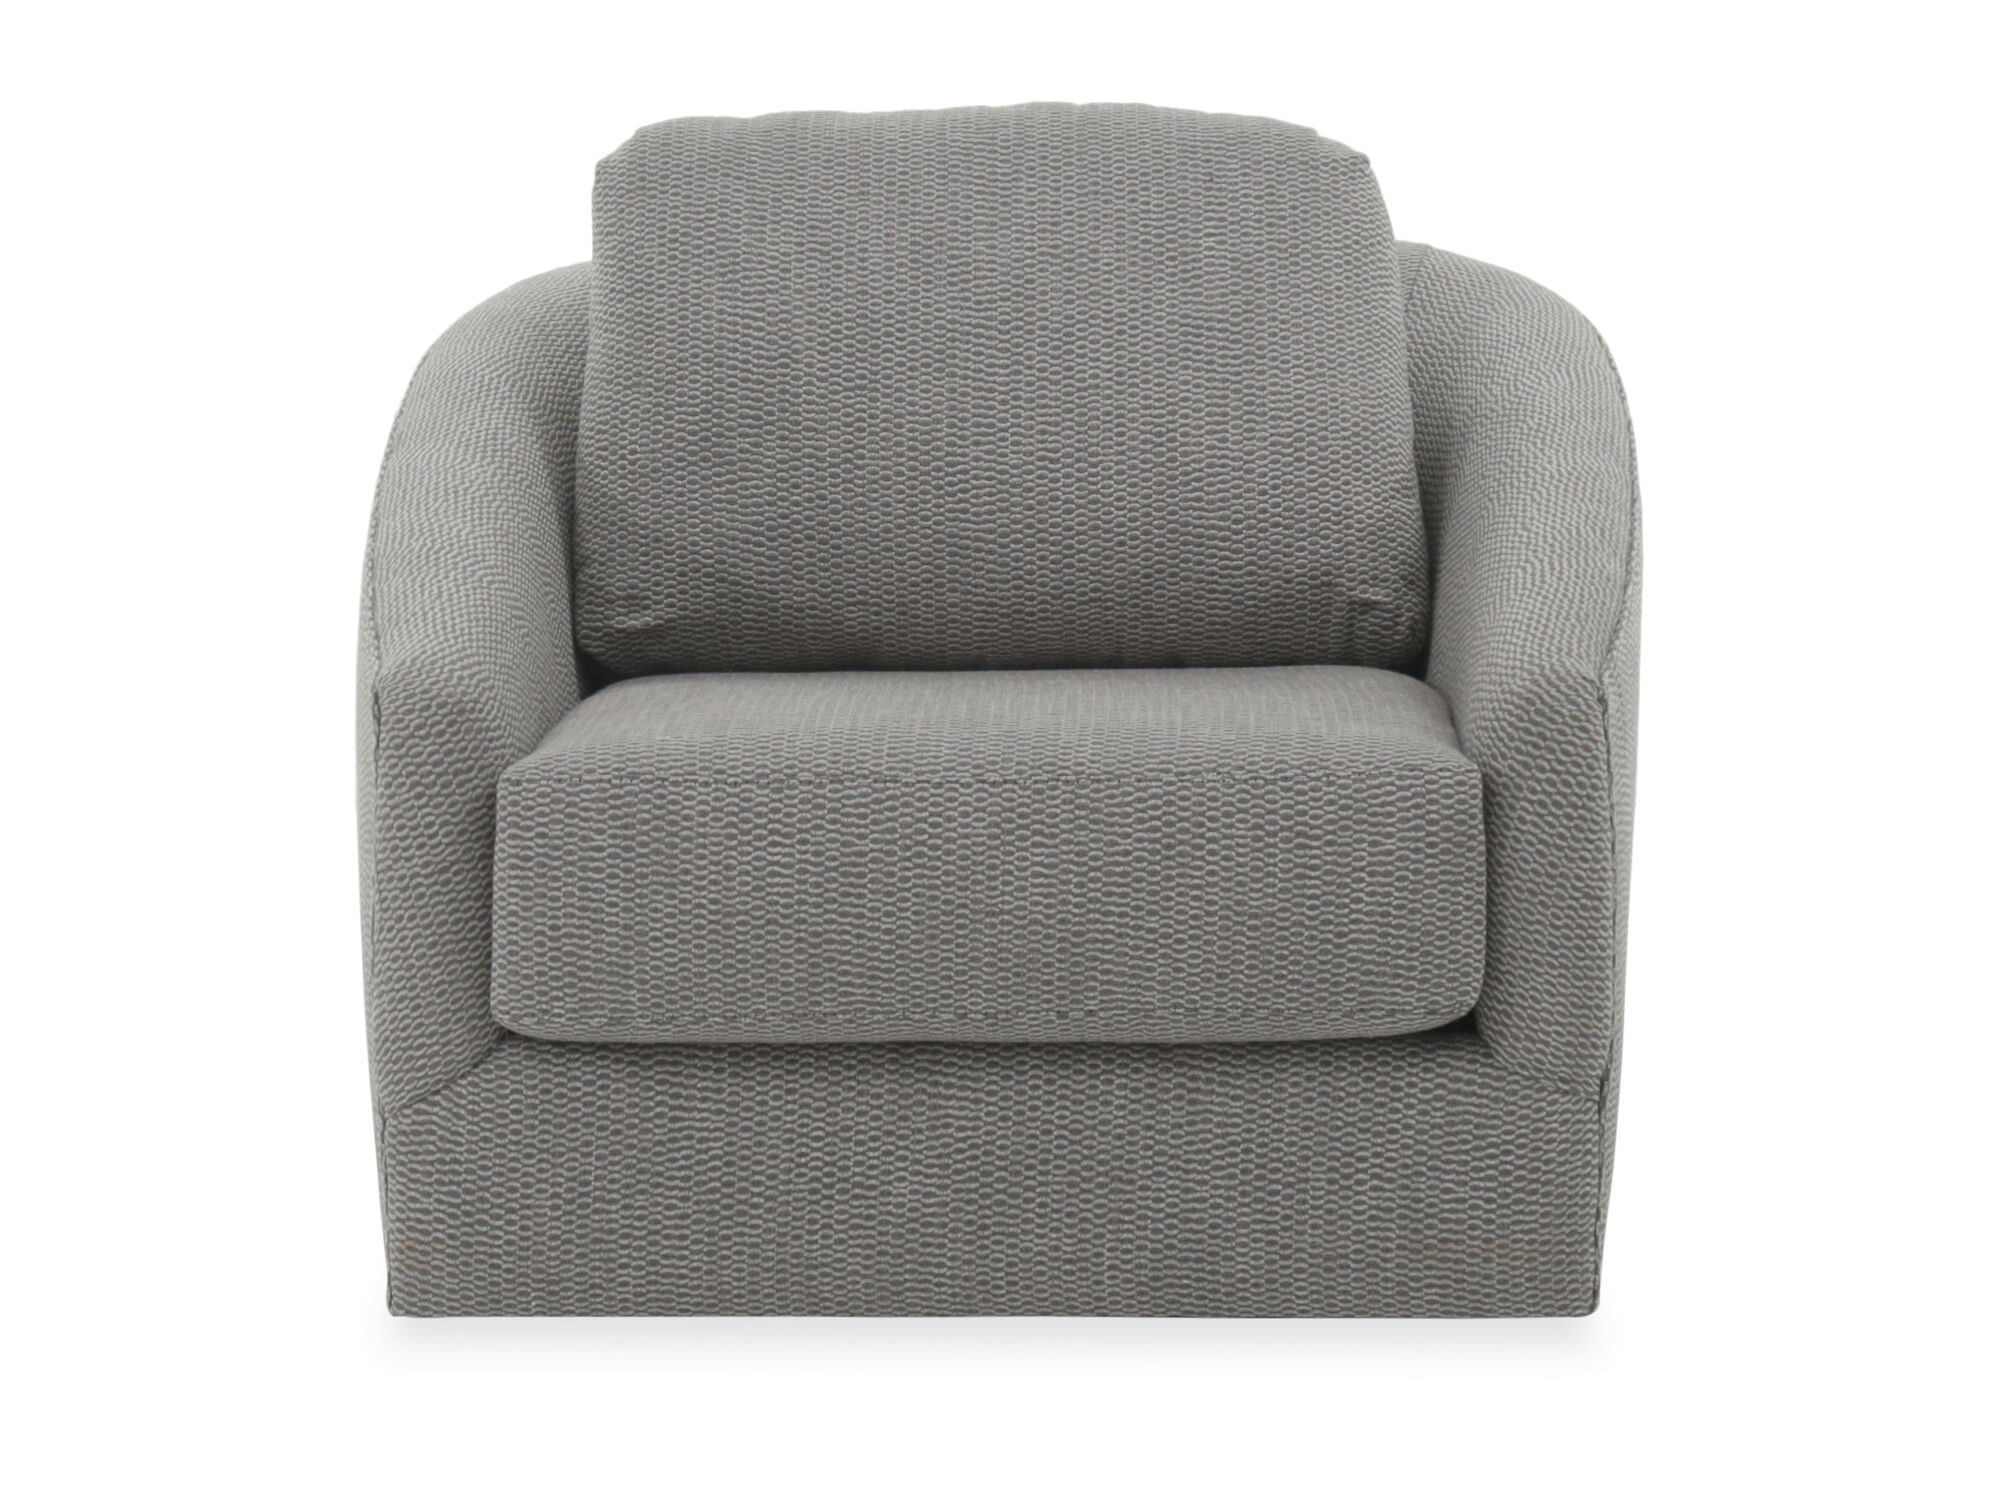 Textured contemporary swivel chair in gray mathis brothers furniture